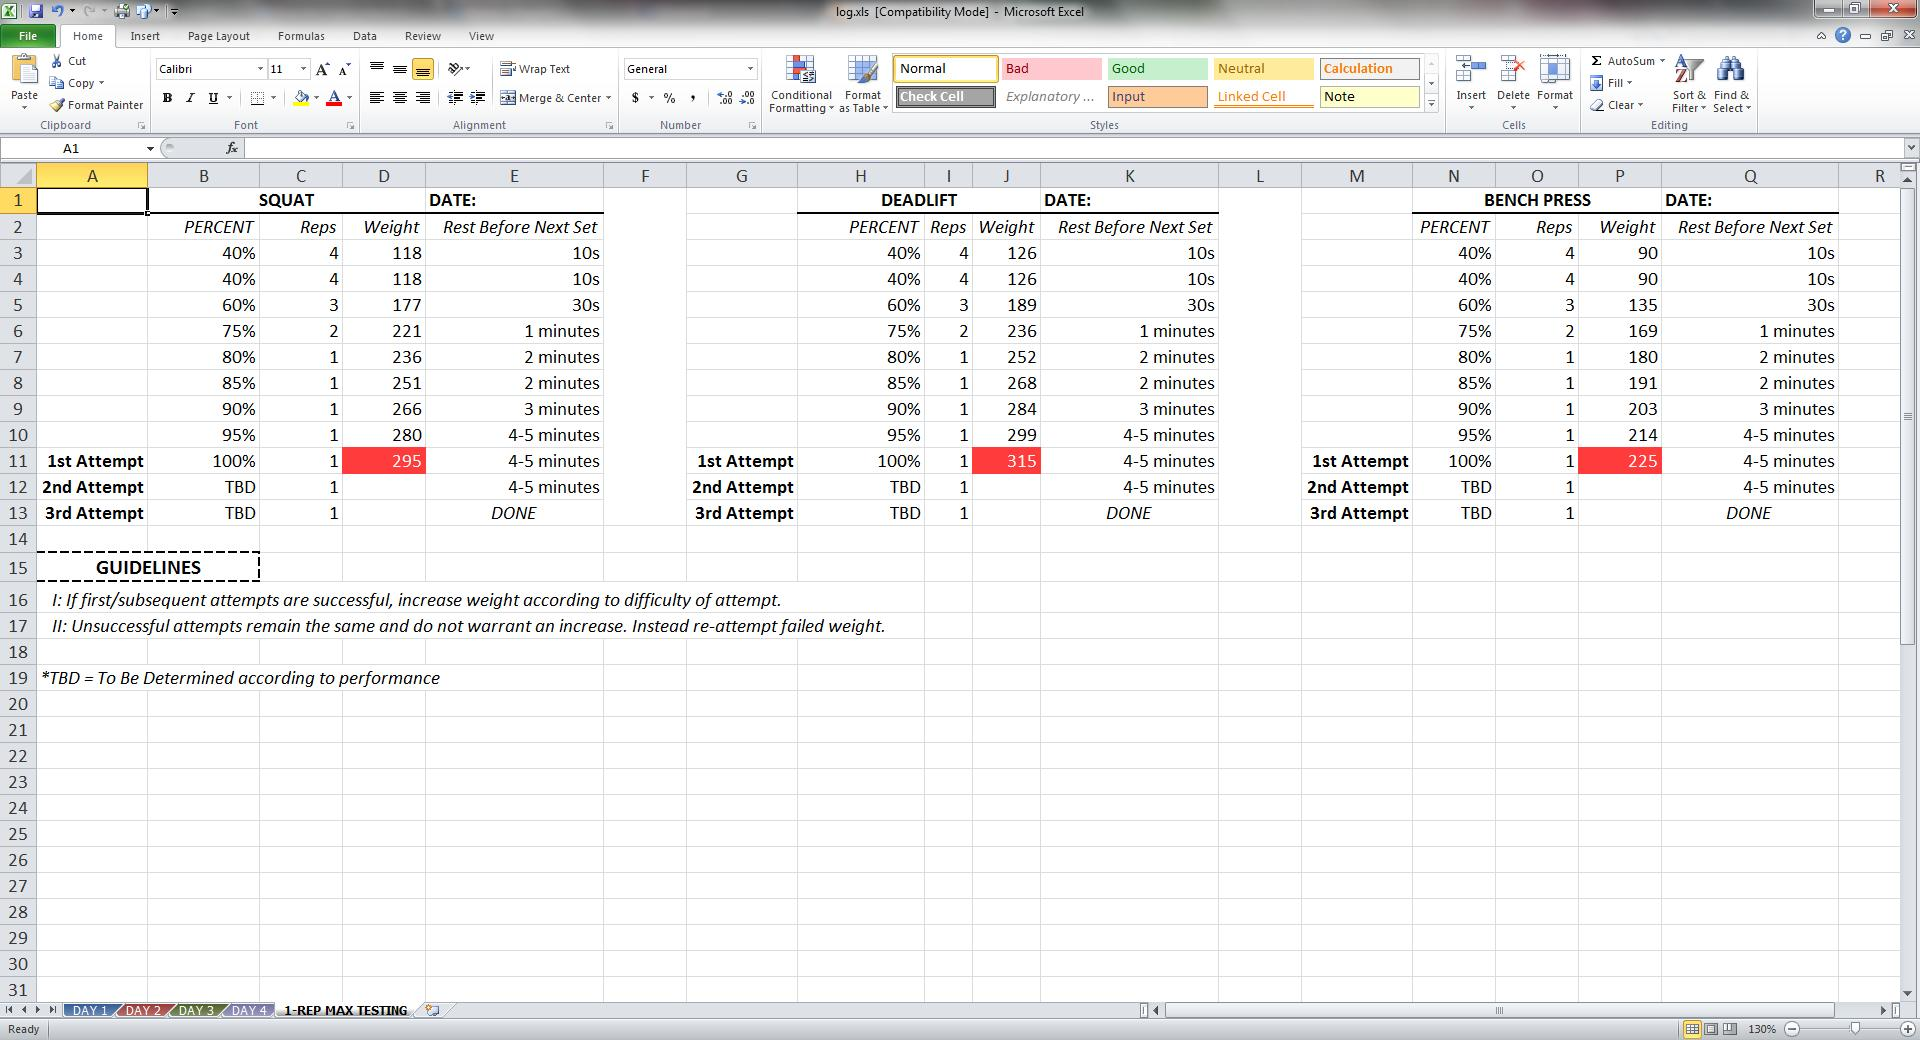 Niel K. Patel: DOWNLOAD: Training Log Spreadsheet